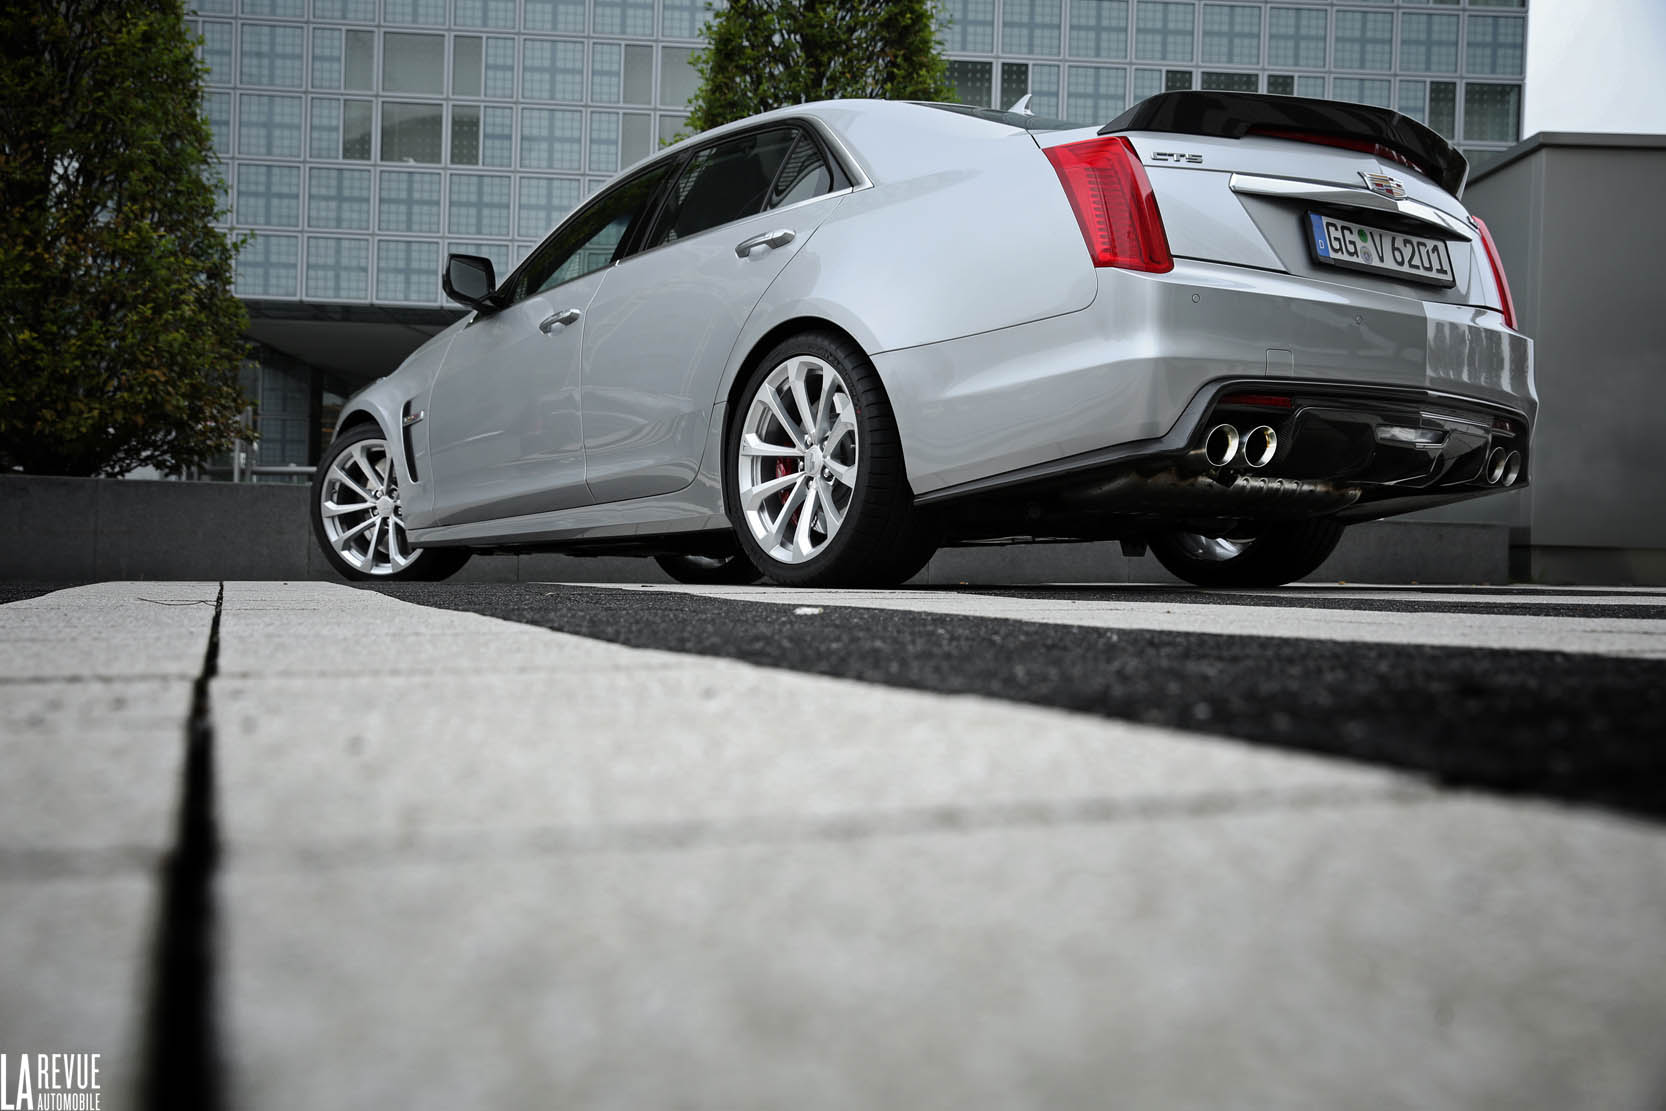 Exterieur_Cadillac-CTS-V-2015_4